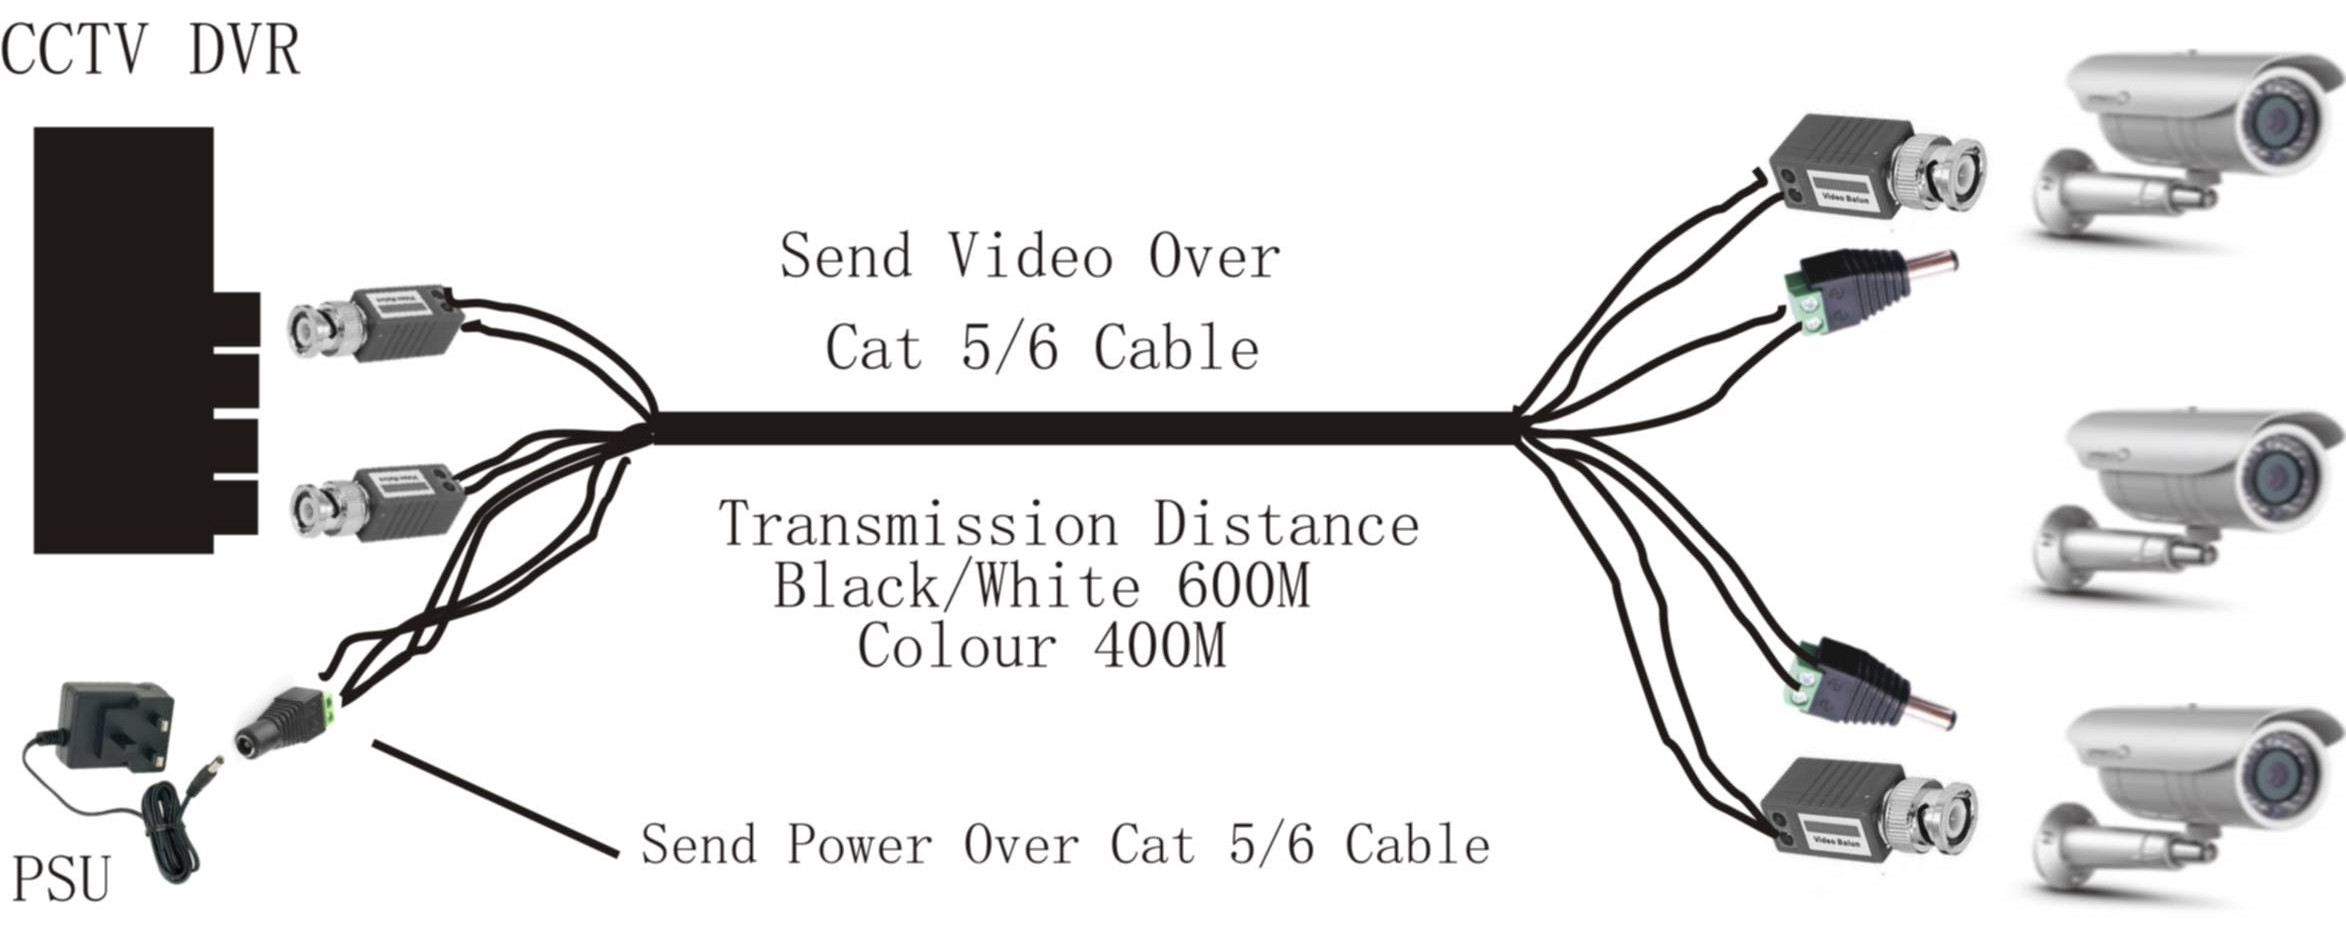 cctv balun wiring diagram cat5 and schematics pontiac g6 speaker cat 5 for modern design of